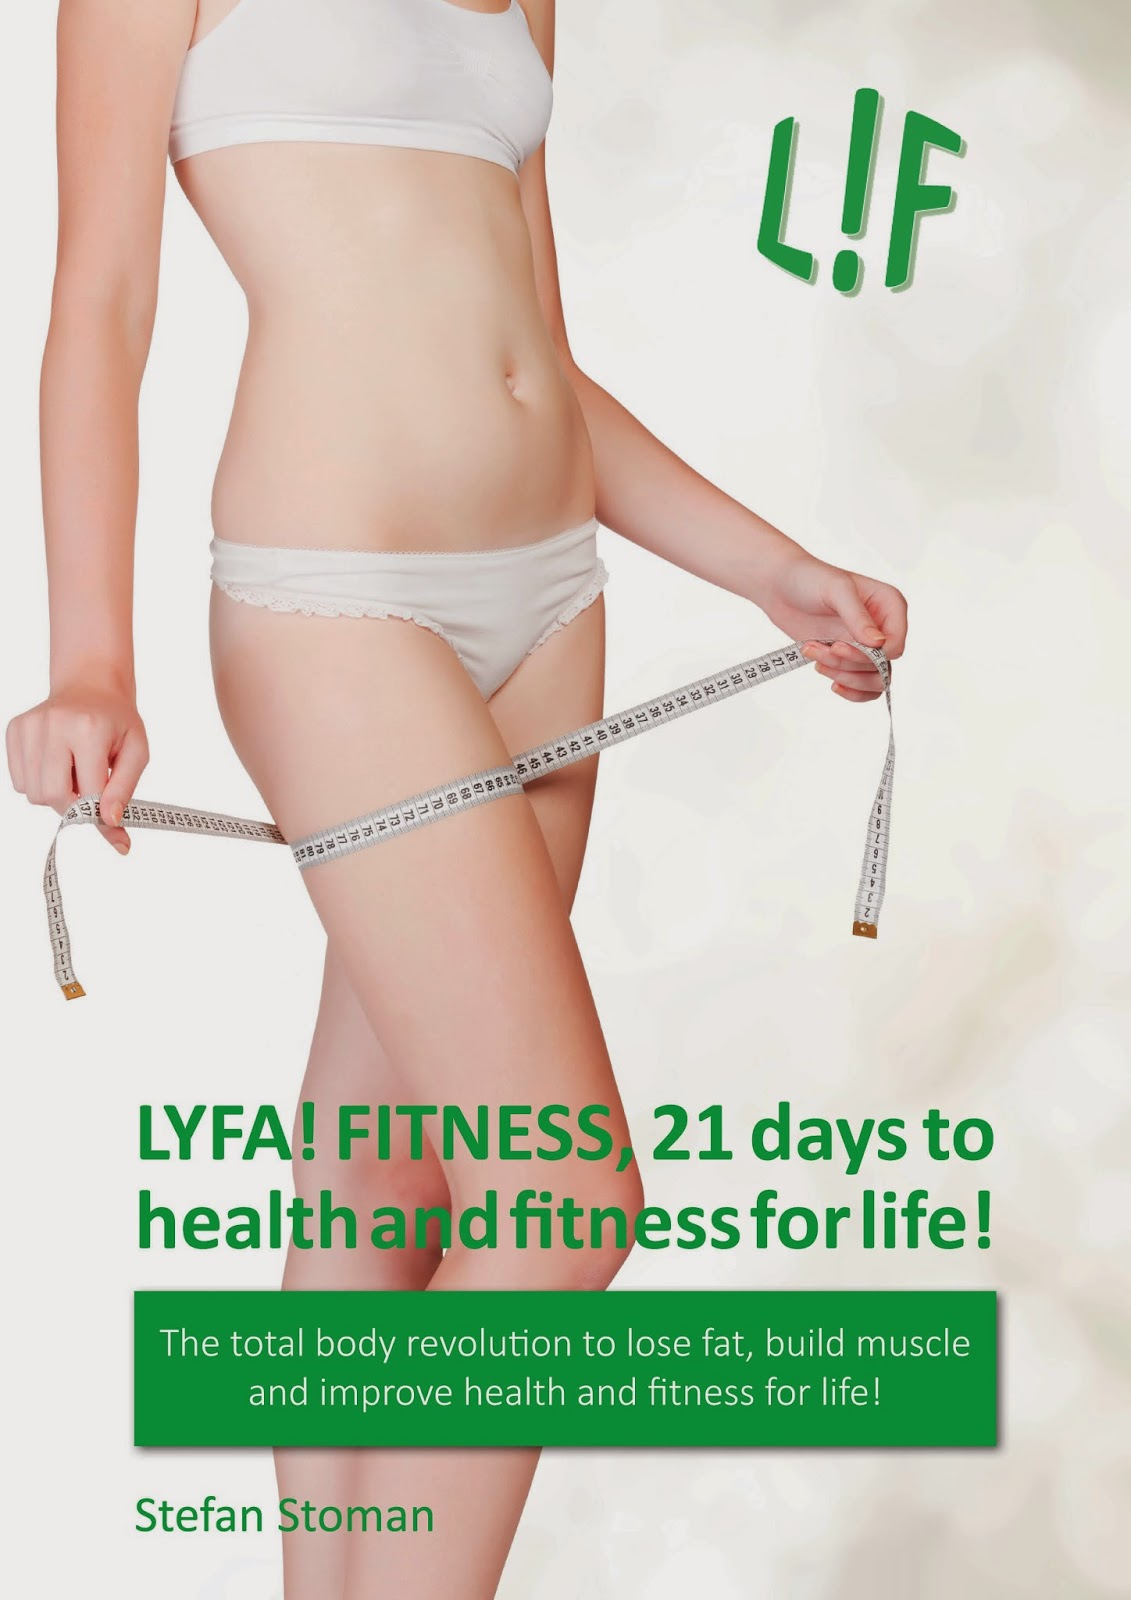 http://www.lyfafitness.co.za